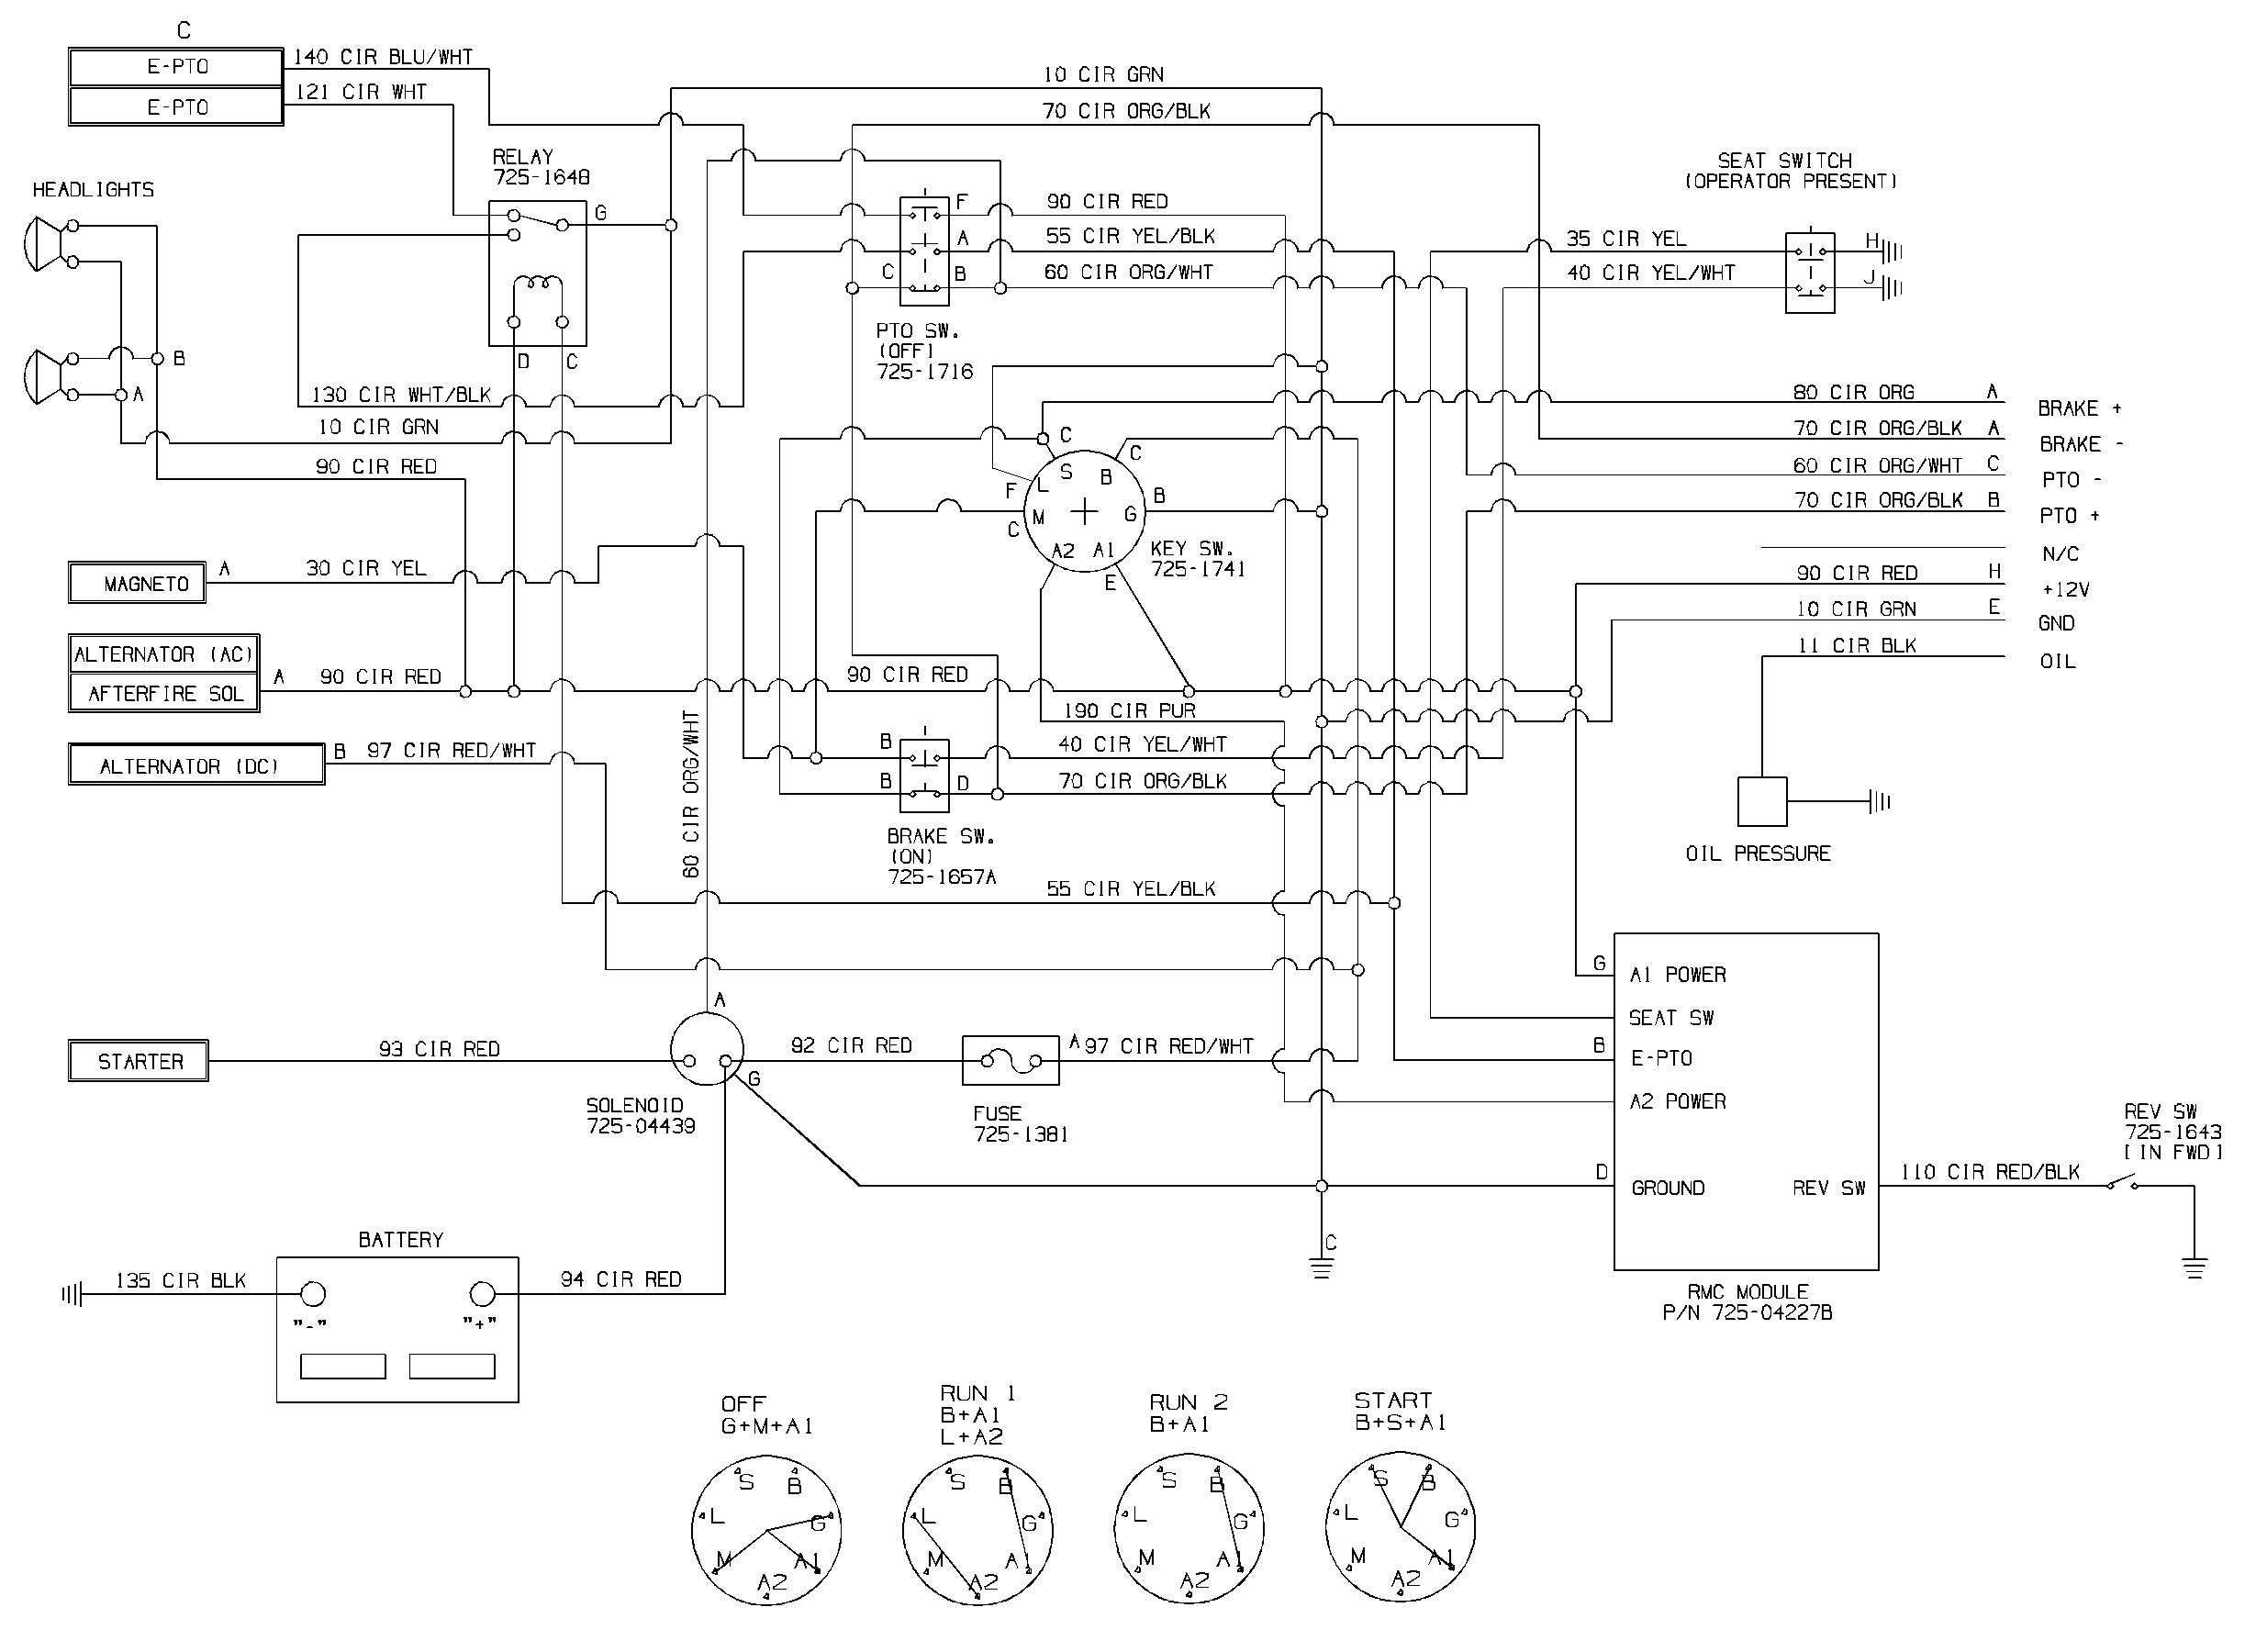 SLTX1050_Schematic wiring diagram for cub cadet zero turn the wiring diagram cub cadet wiring diagram lt1050 at soozxer.org